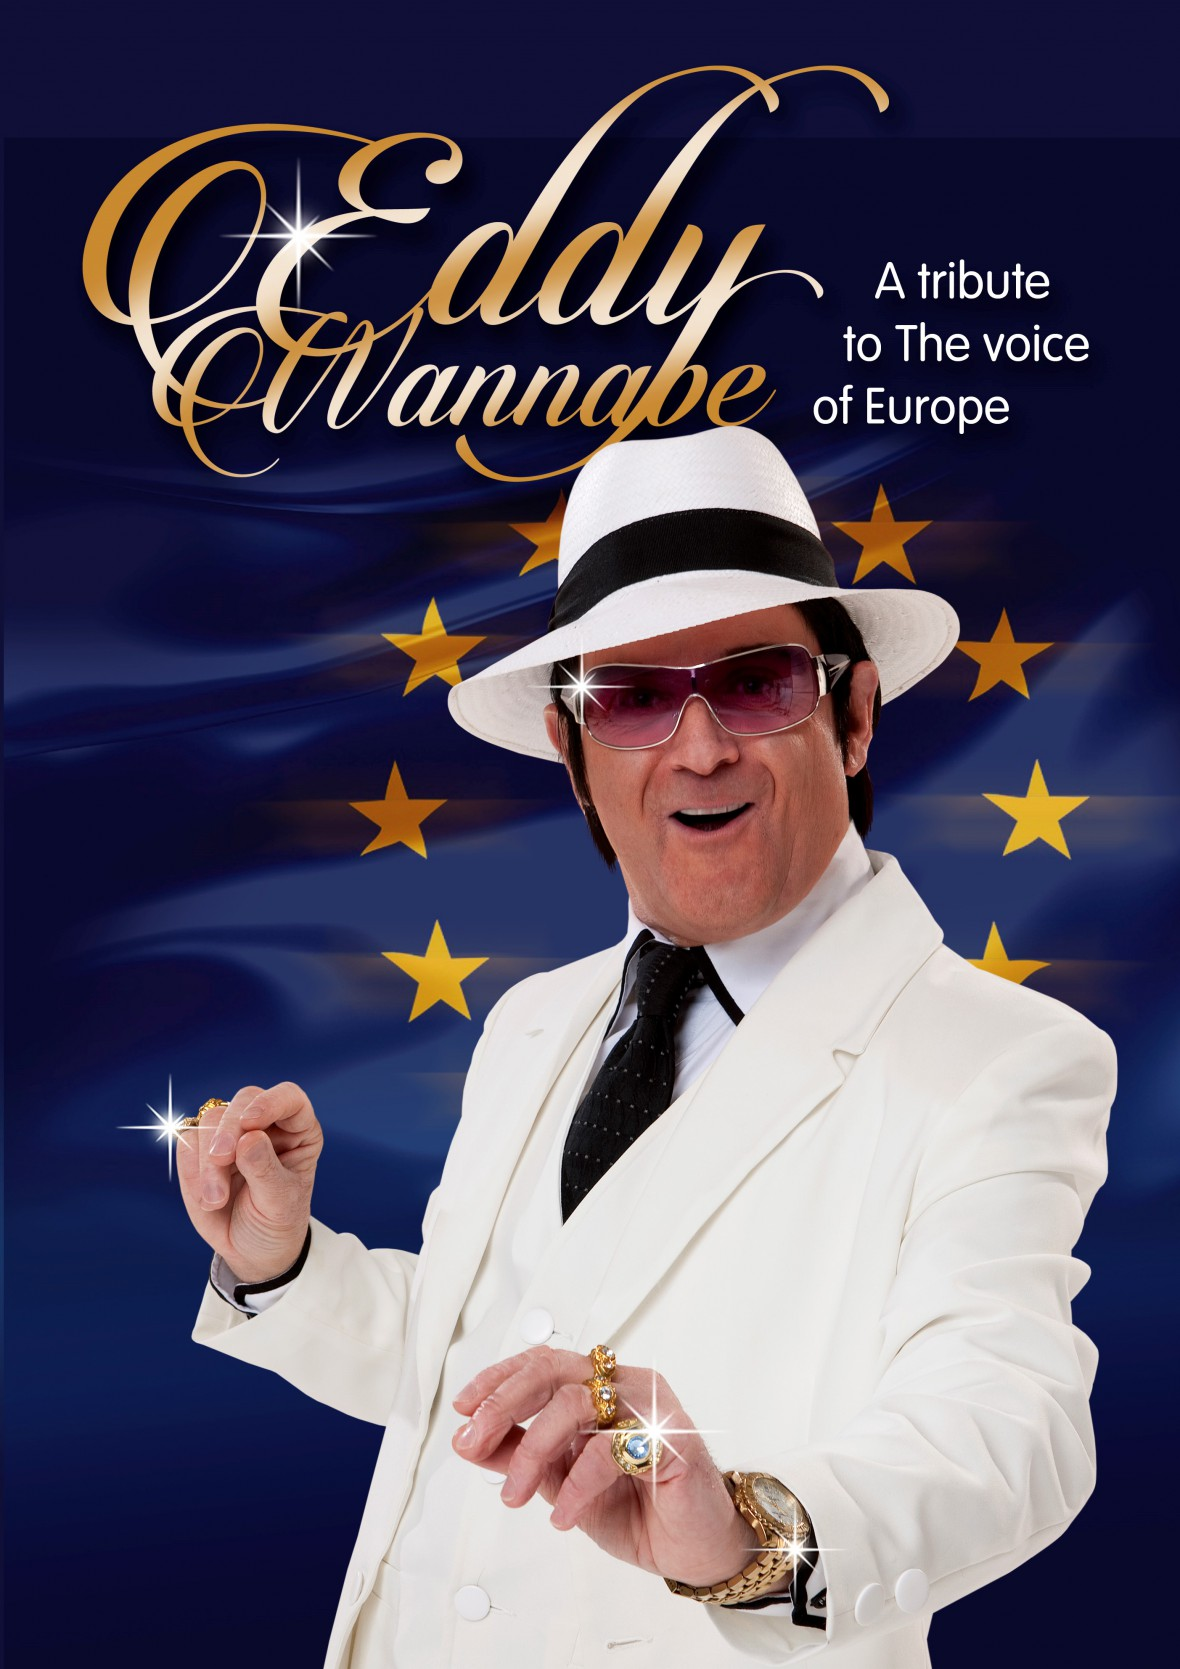 Eddy Wannabe; A tribute to The Voice of Europe